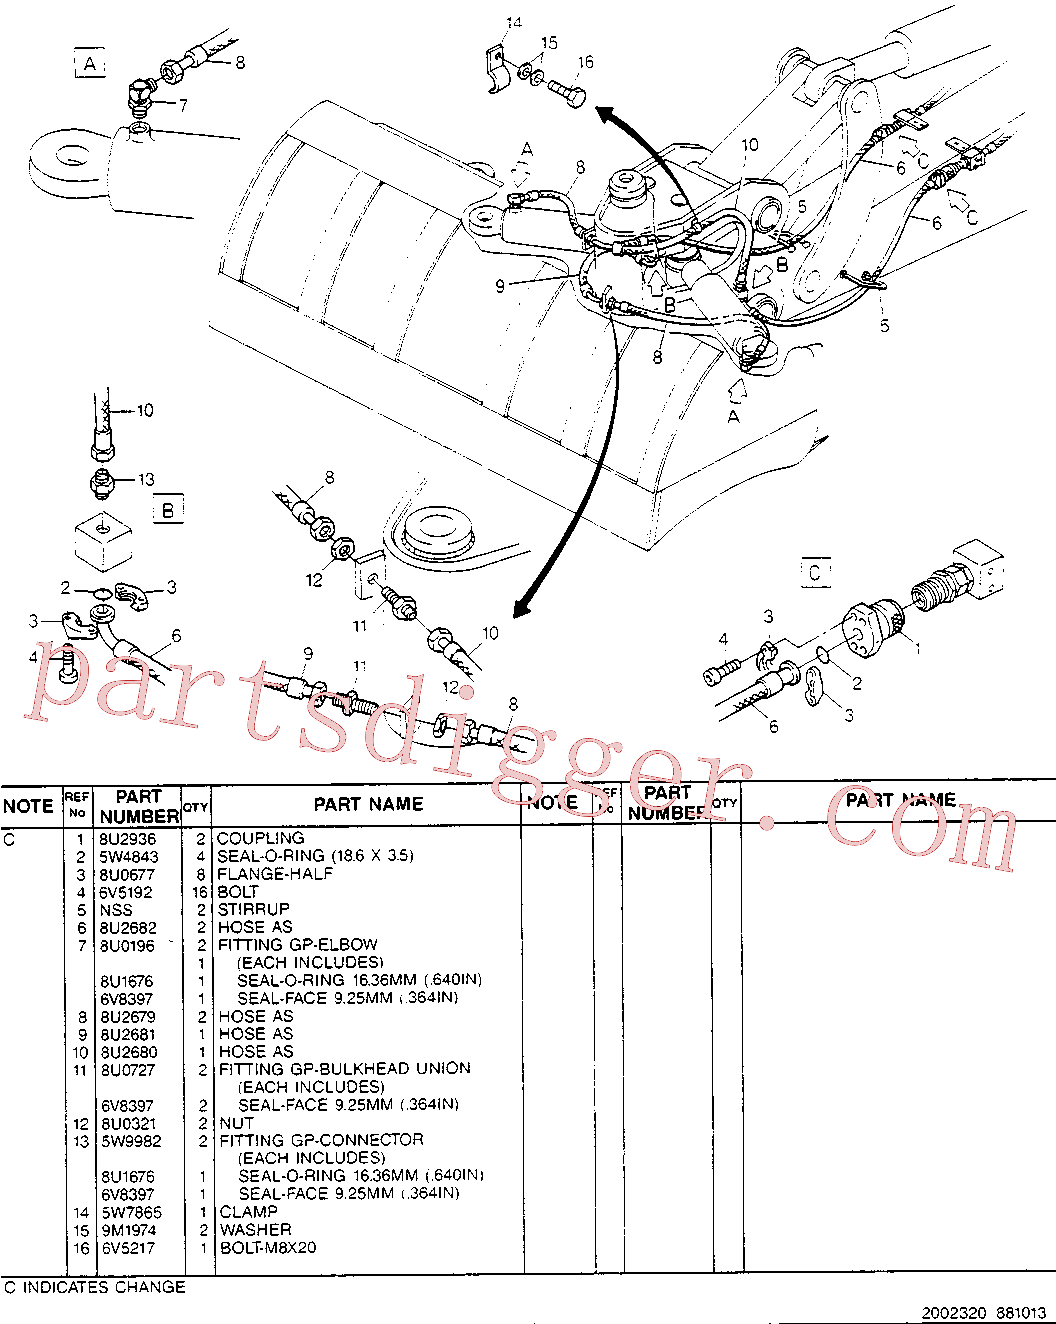 CAT 8U-0727 for 224B Excavator(EXC) hydraulic system 8U-2674 Assembly